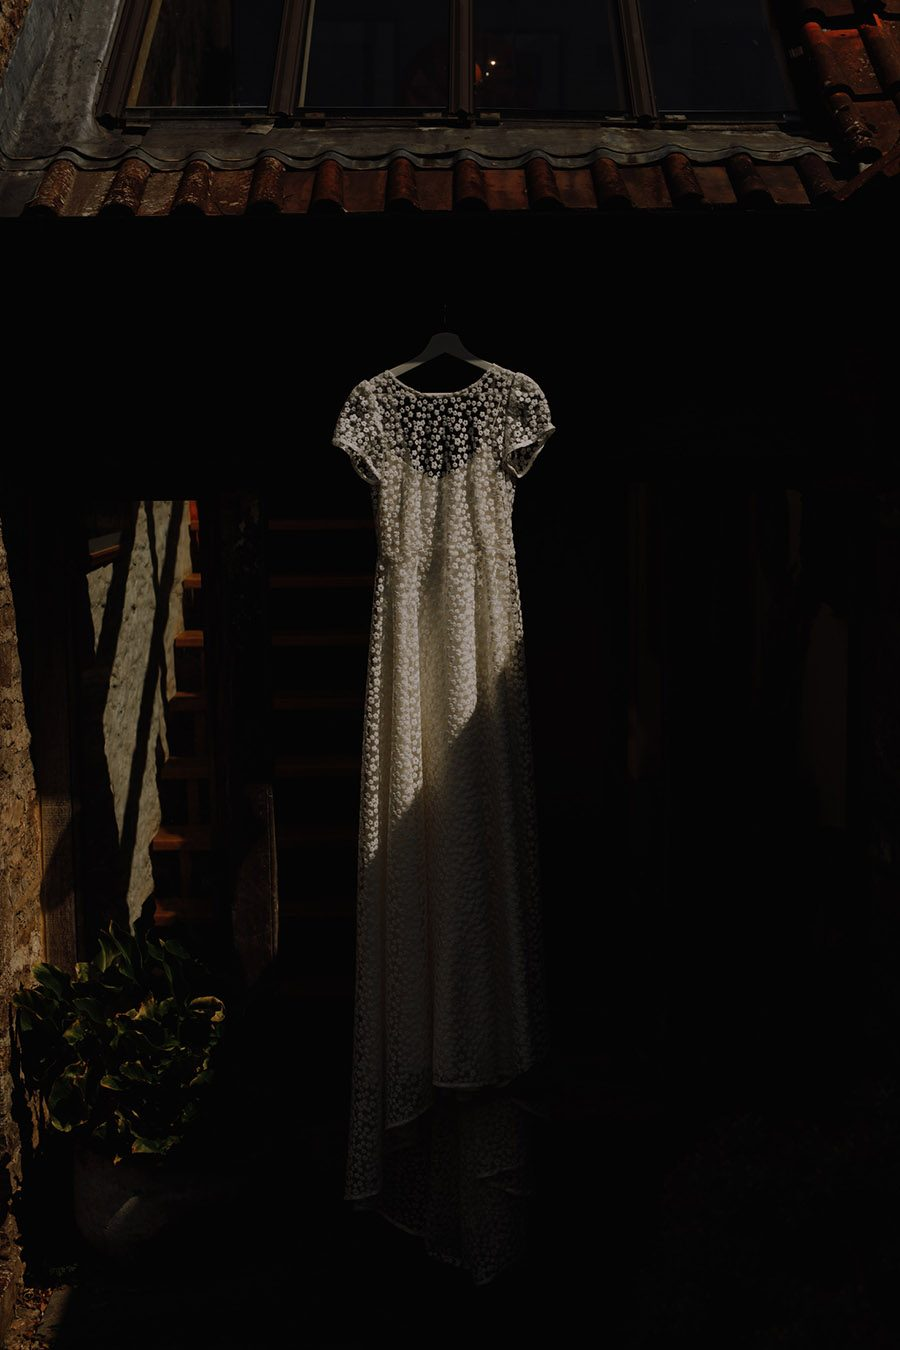 wedding dress hanging in the shadows of a house